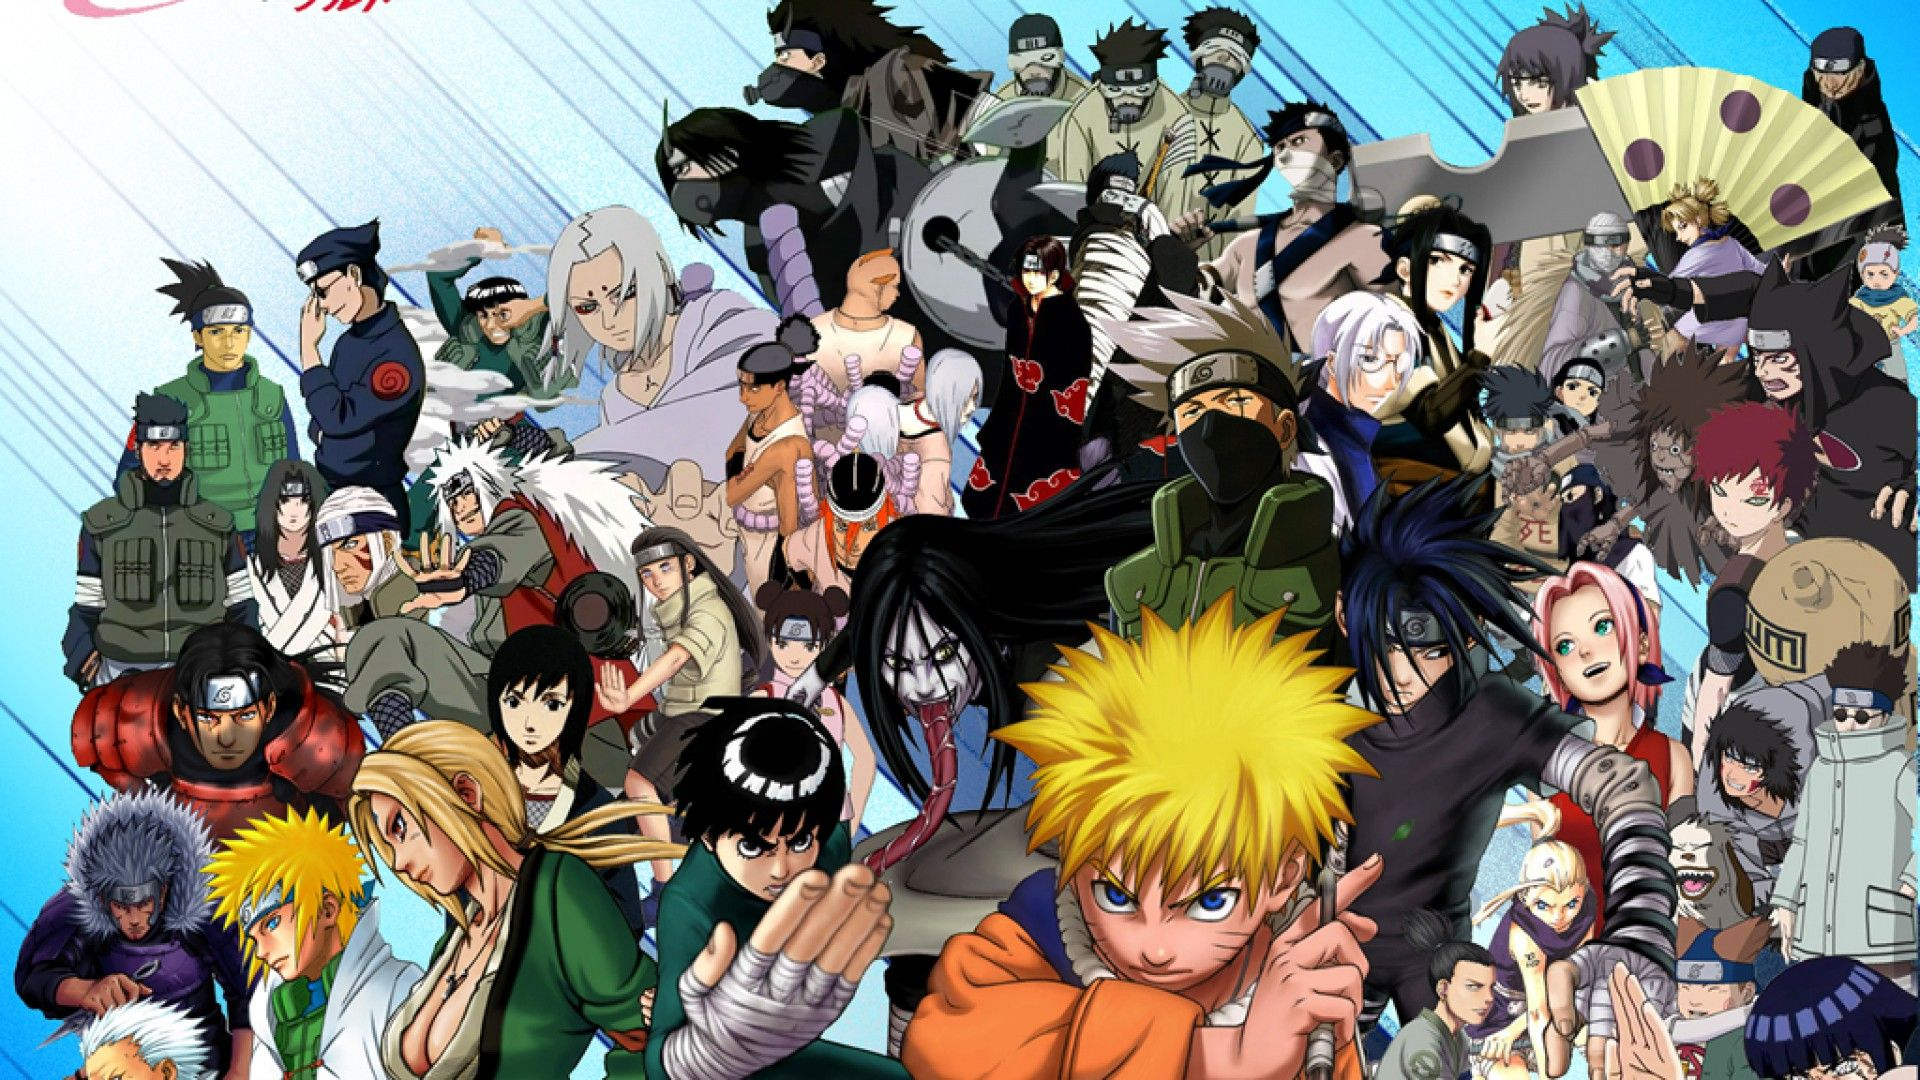 All Characters Naruto Hd Wallpaper Wallpaper Anime Naruto Wallpaper Anime Naruto